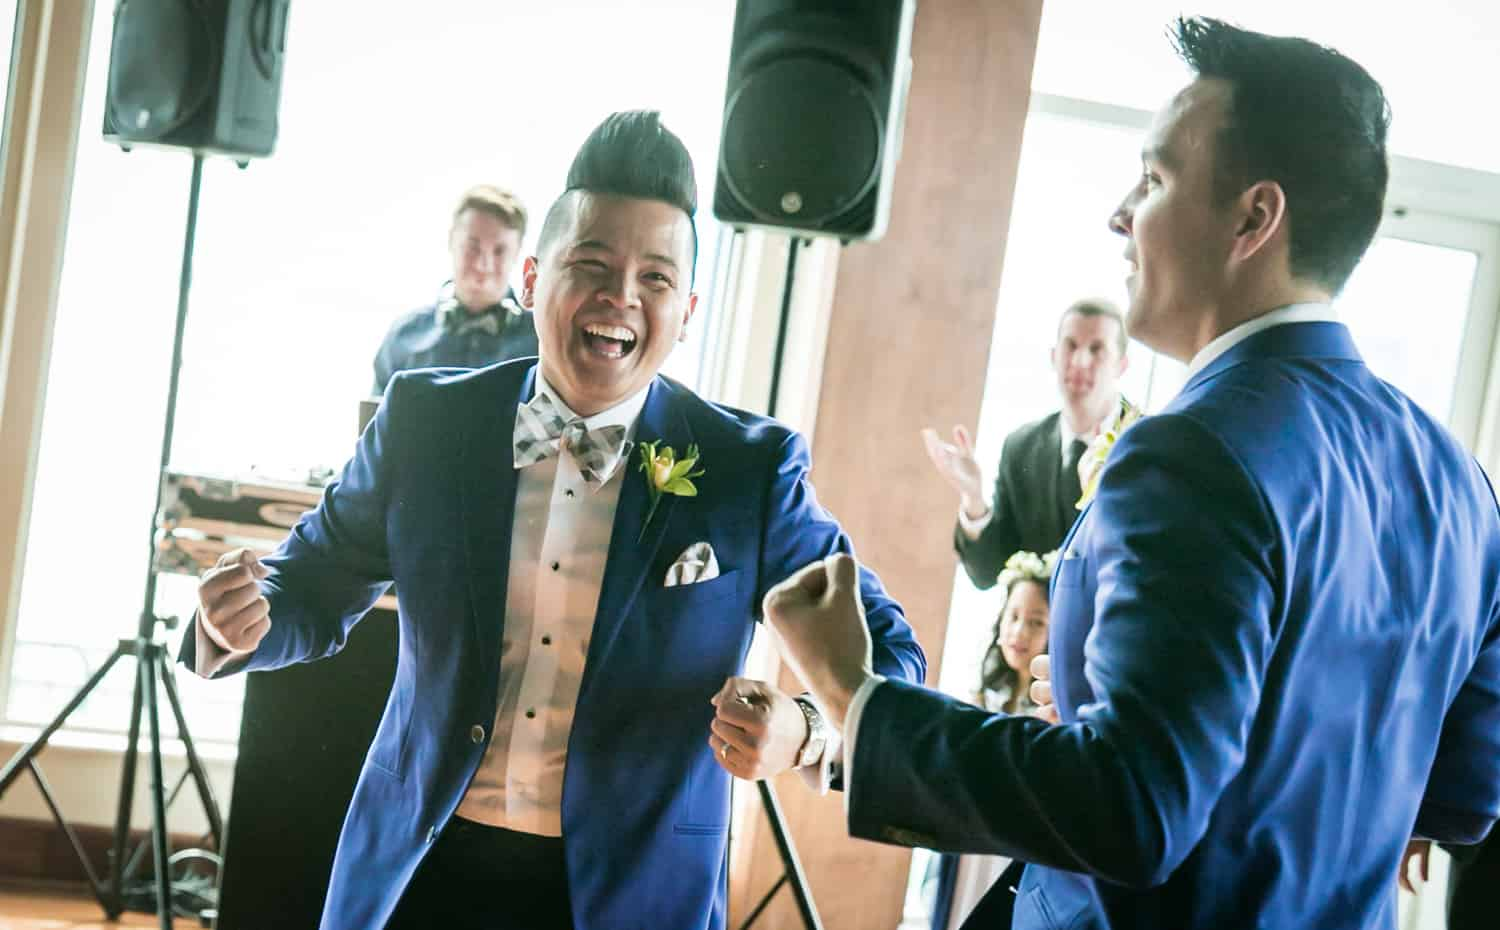 Two grooms dancing in front of guests at a Lighthouse at Chelsea Piers wedding